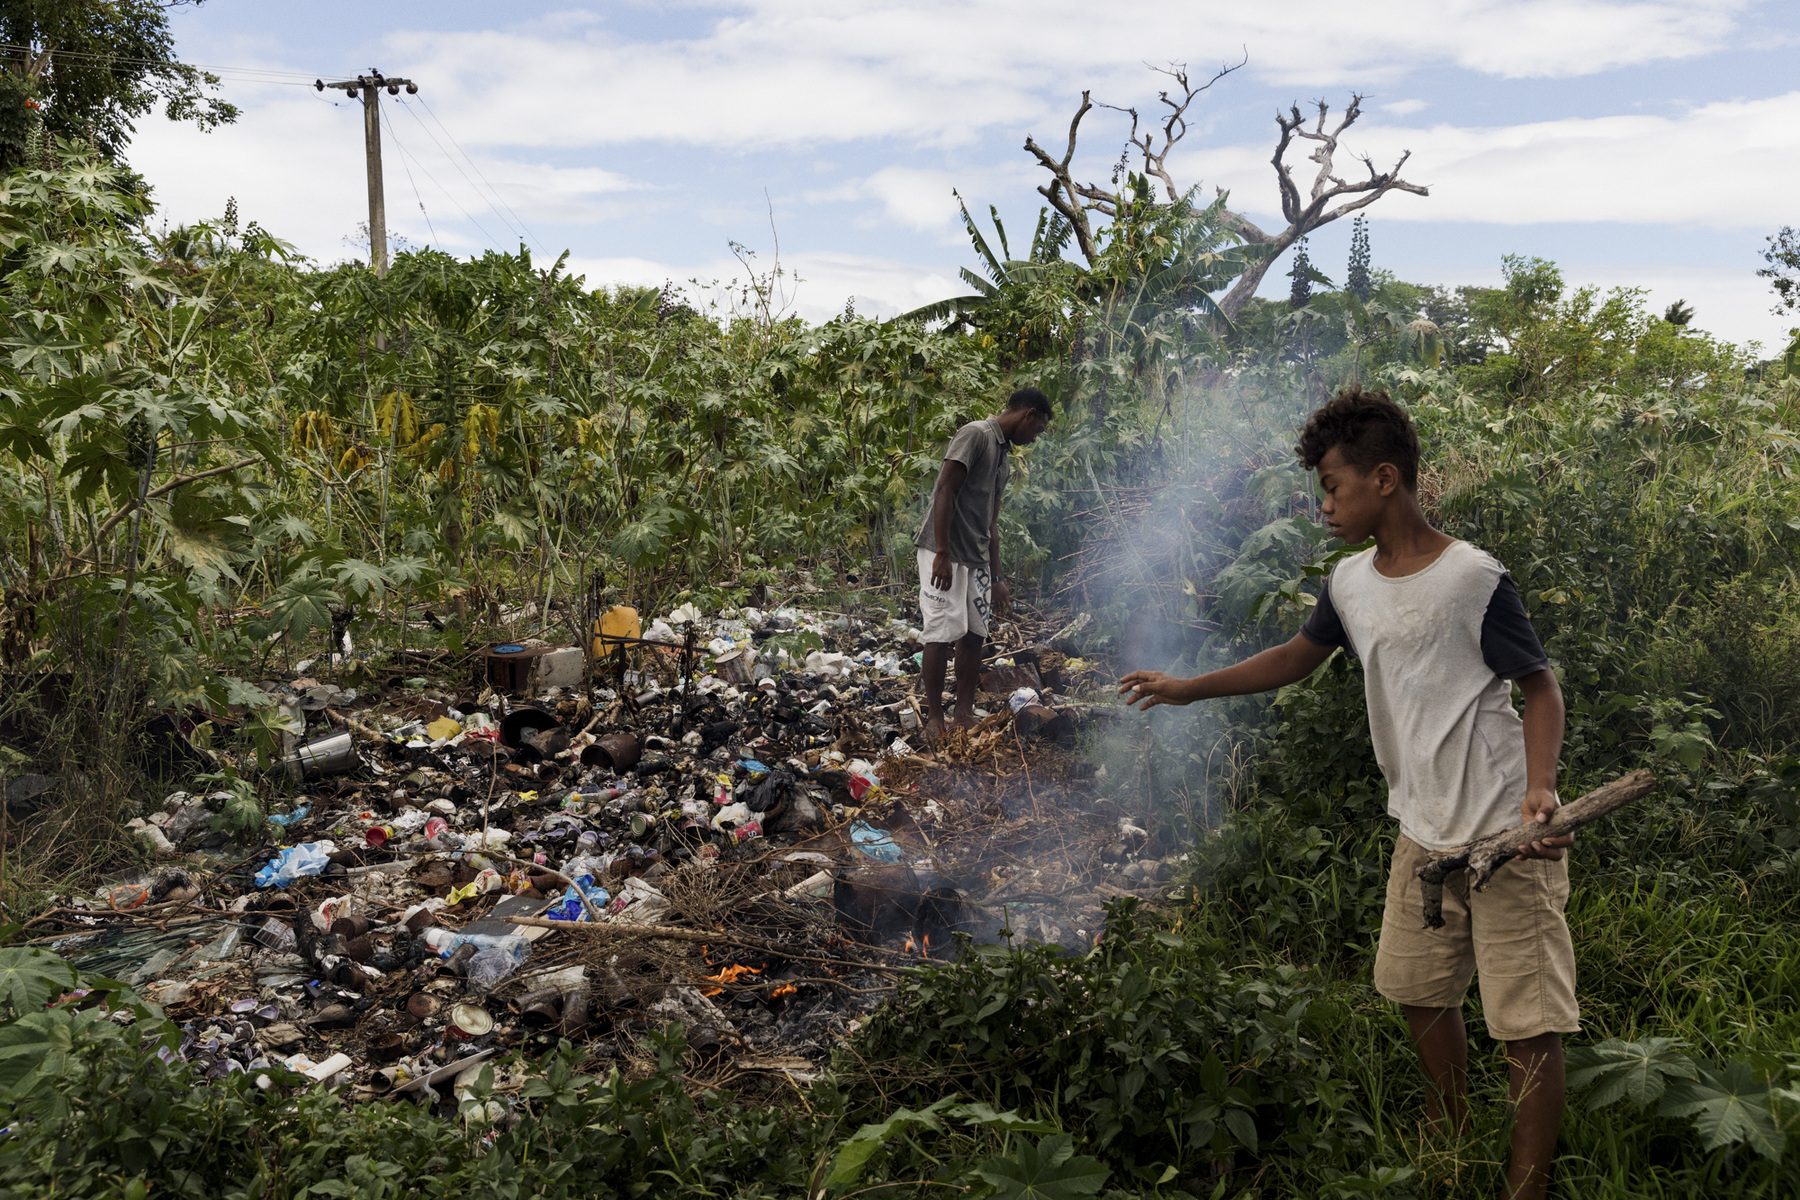 Adrienne Surprenant - 27/12/2018, Namotomoto (Nadi), Fiji—Ben and Paul burn garbage piles. In Namotomoto village, people have to bring their cans and garbage containing water in the middle of their fields, a couple hundred meters away. There, they used to bury them, but the field filled and the city workers never came to clean the dump. Three years ago, they started burning the piles of waste.